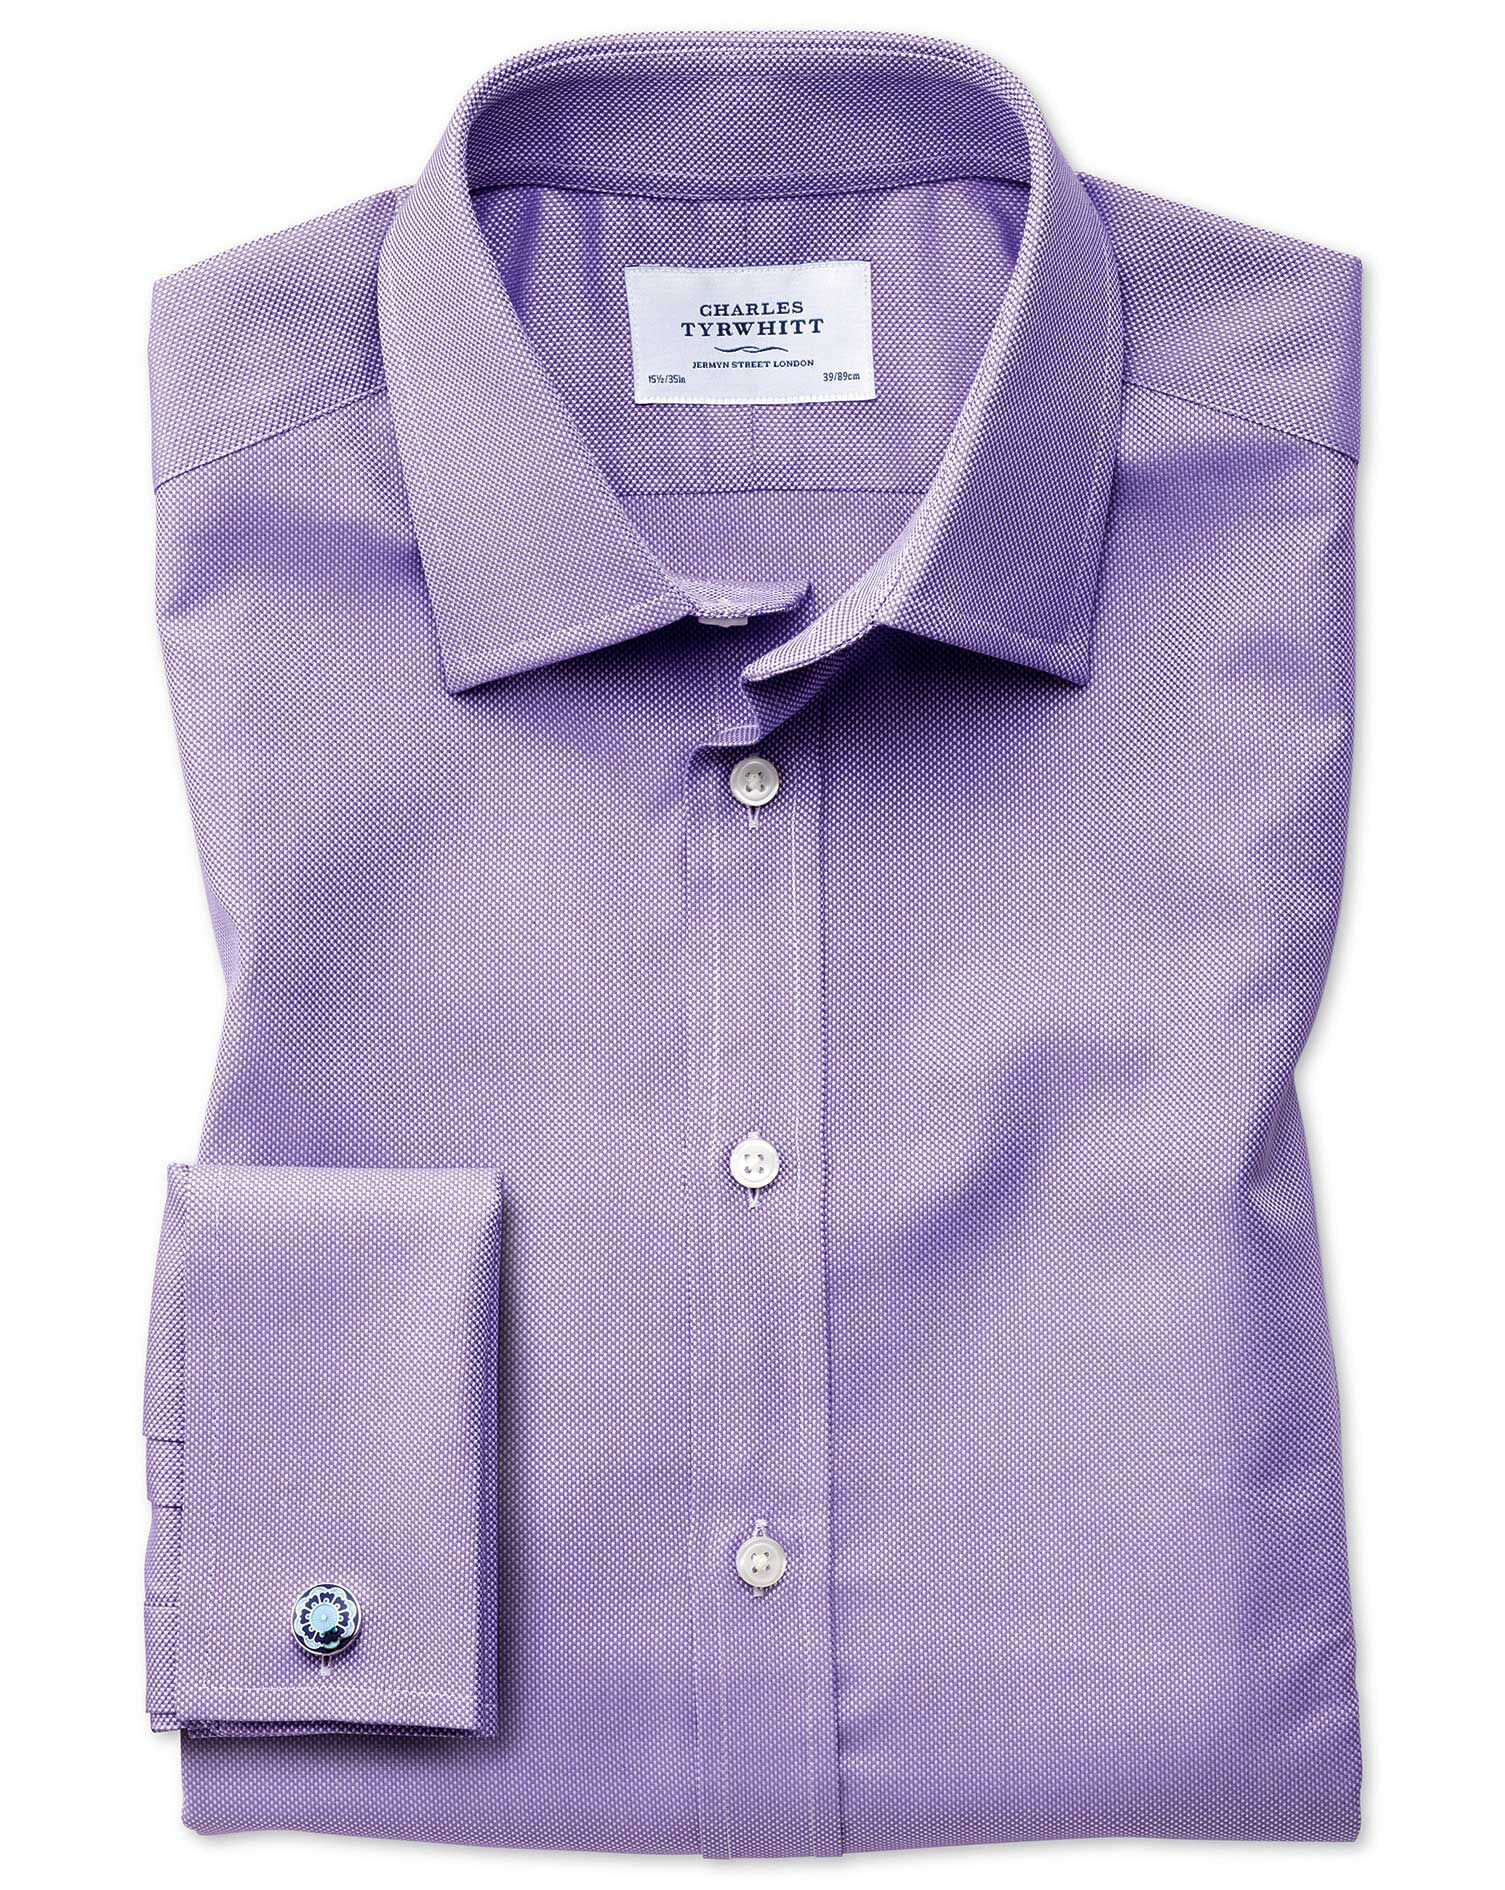 Slim Fit Egyptian Cotton Royal Oxford Lilac Formal Shirt Single Cuff Size 15/33 by Charles Tyrwhitt